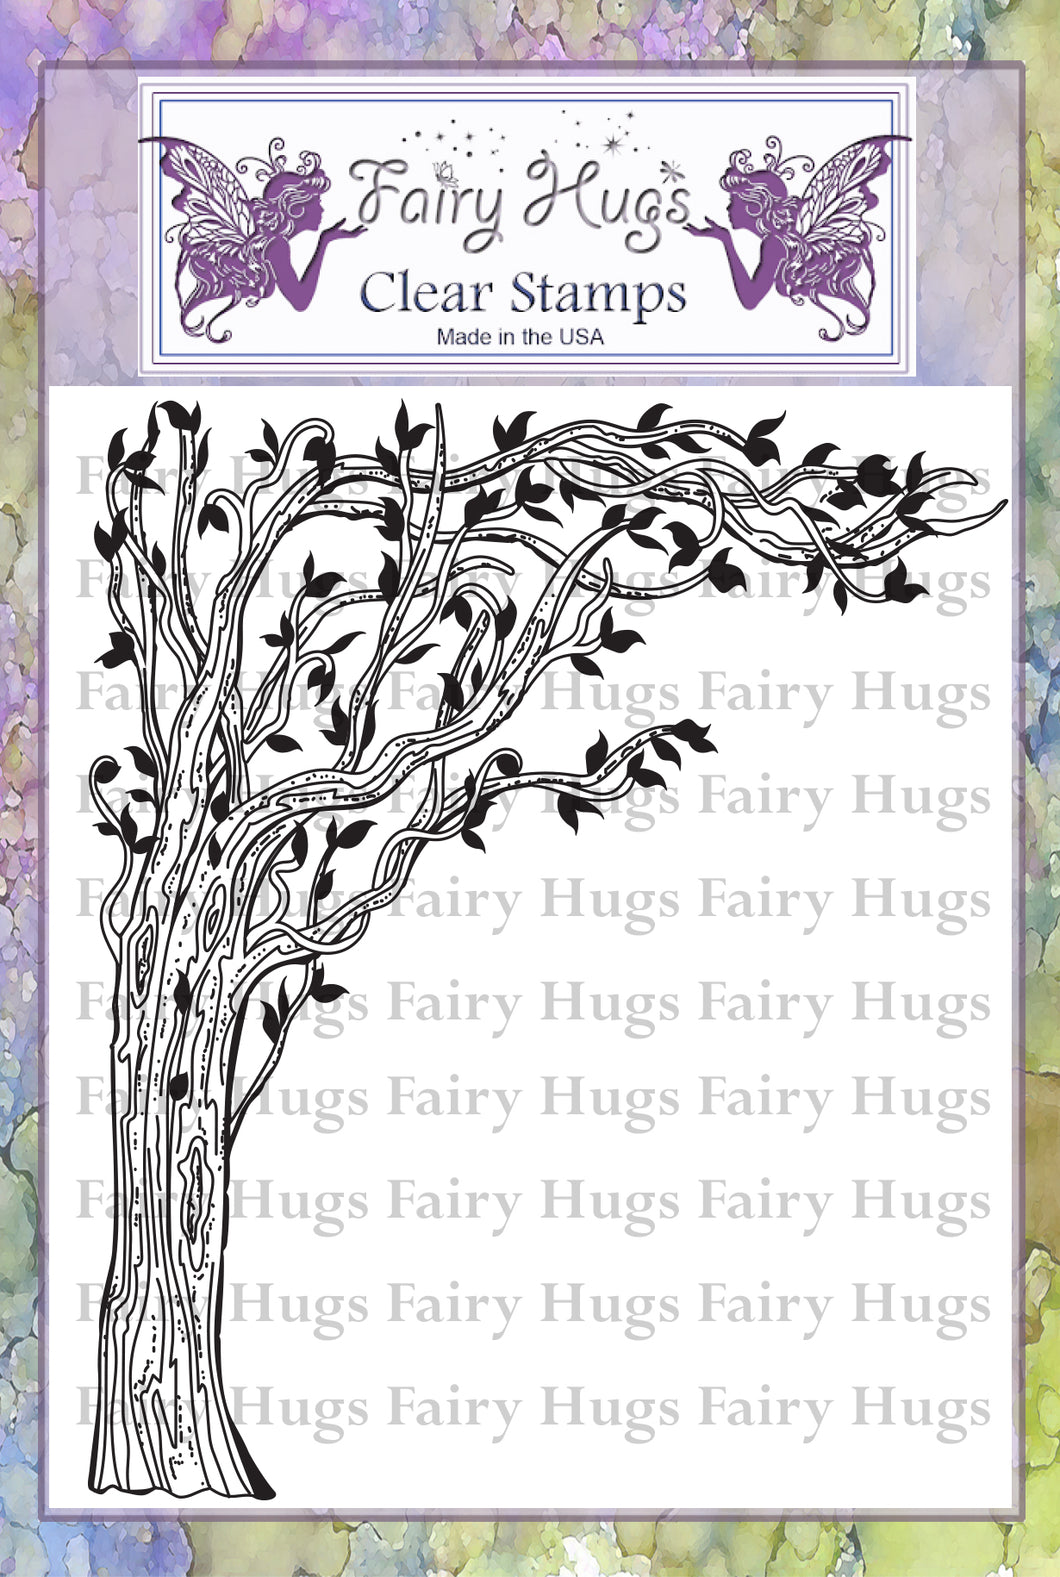 Fairy Hugs Stamps - Lantern Tree